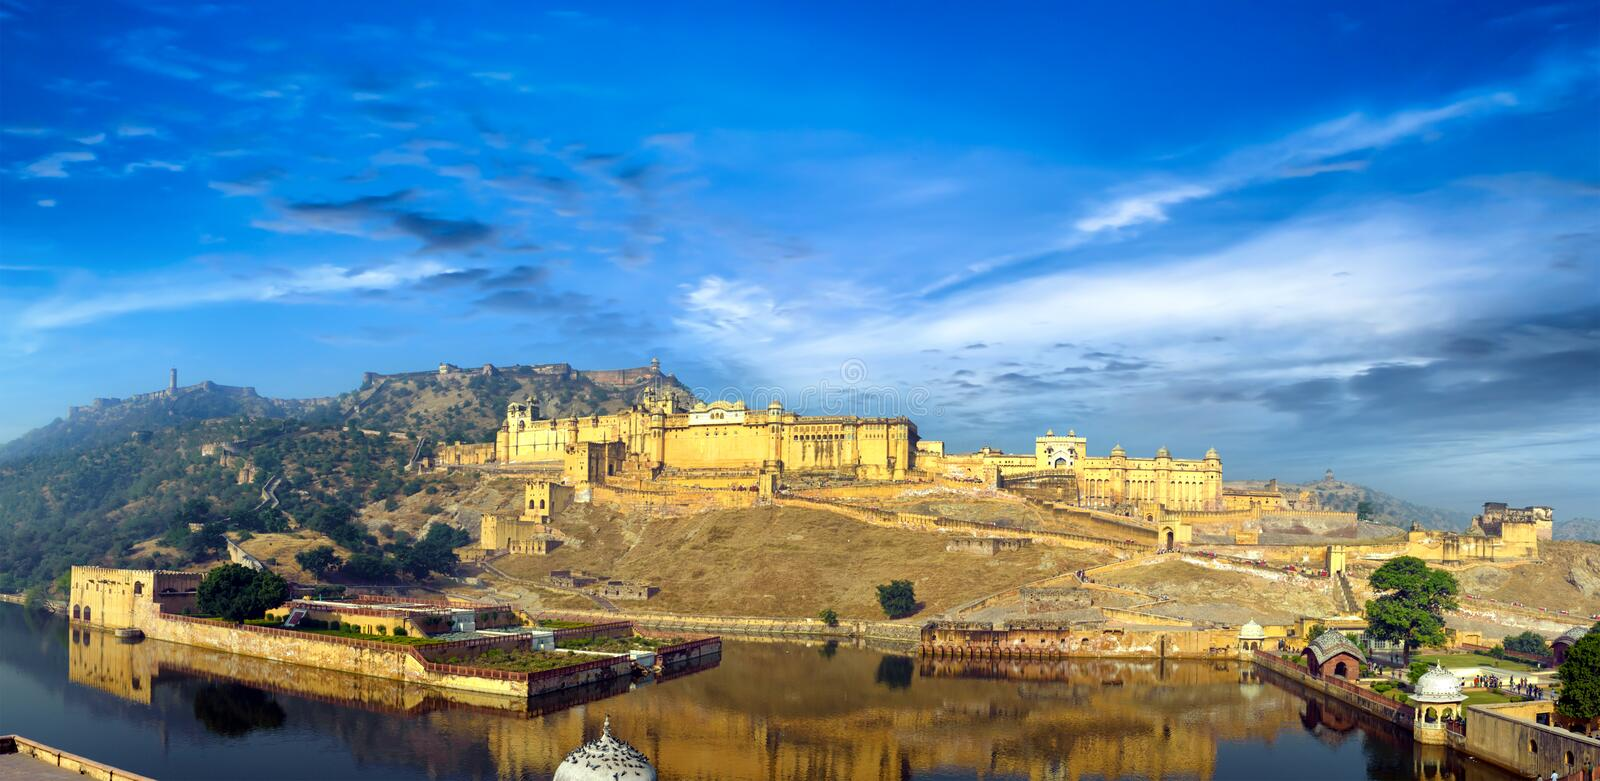 India Jaipur Amber fort in Rajasthan. Ancient indian palace architecture vertical panoramic view royalty free stock photo